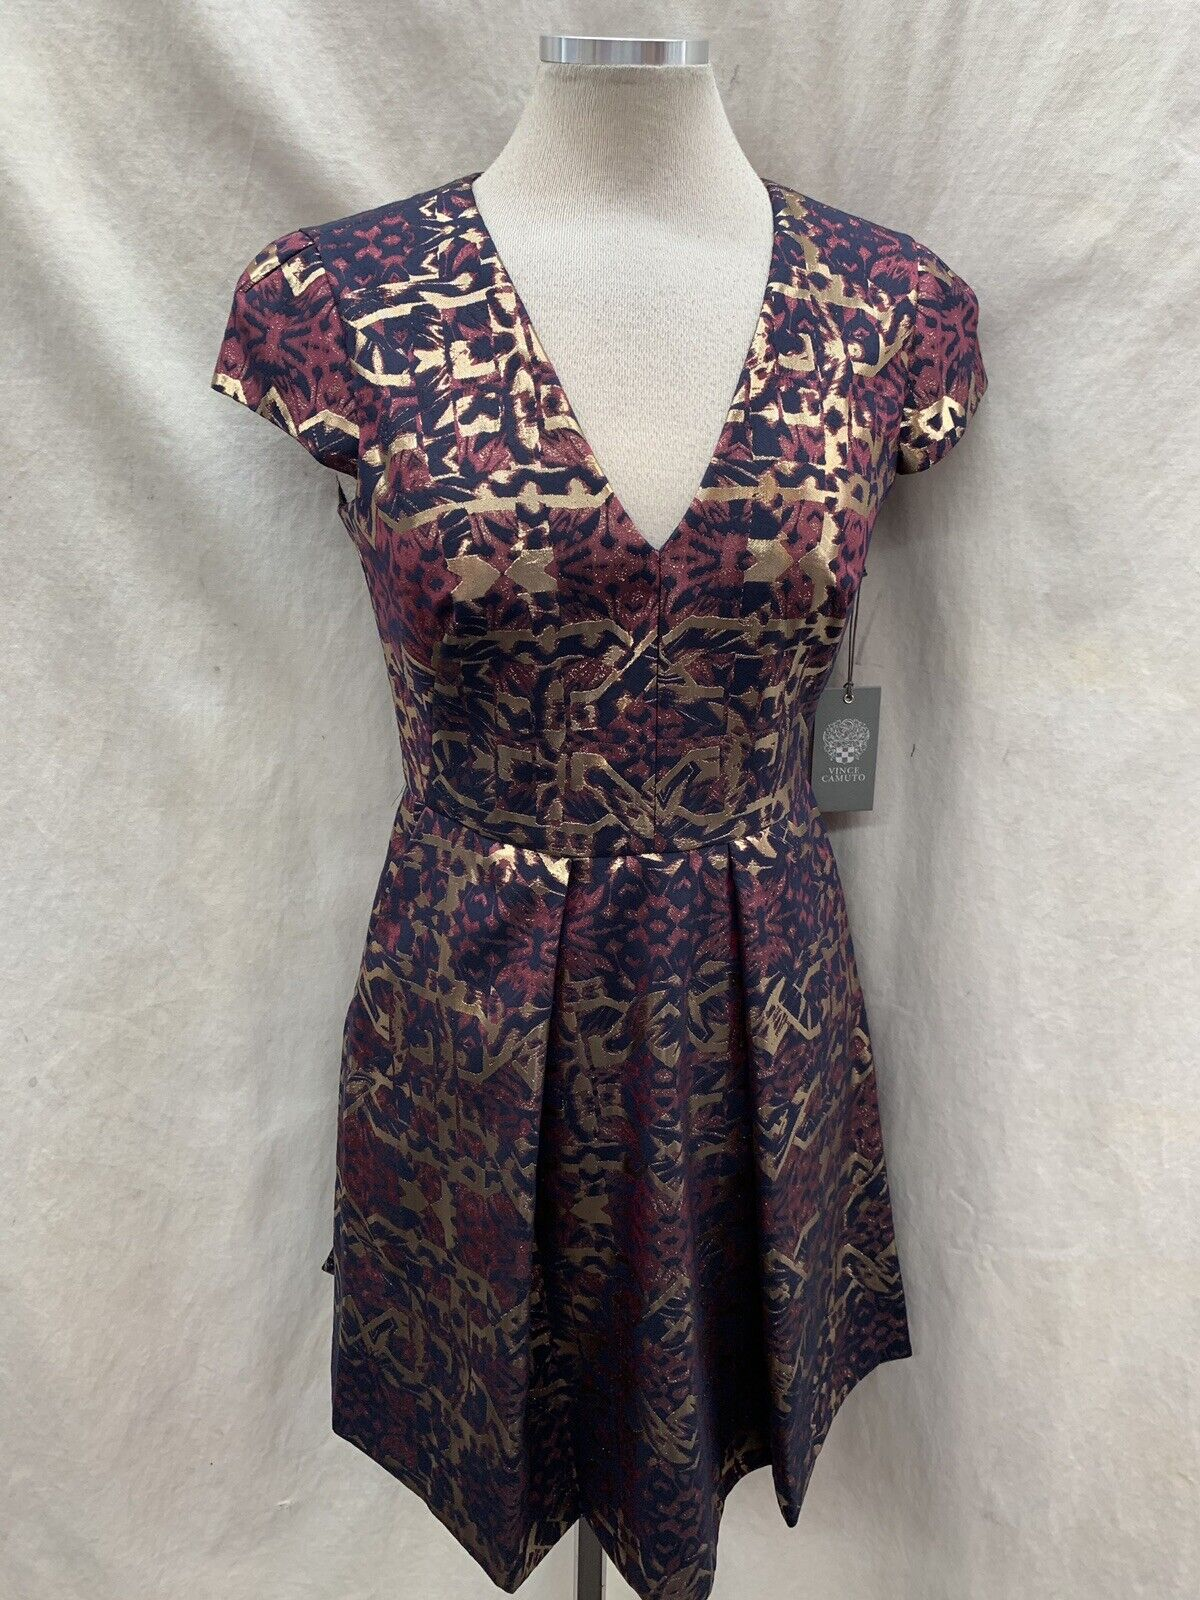 VINCE CAMUTO DRESS Größe 2 RETAIL NEW WITH TAG LINED LENGTH 37